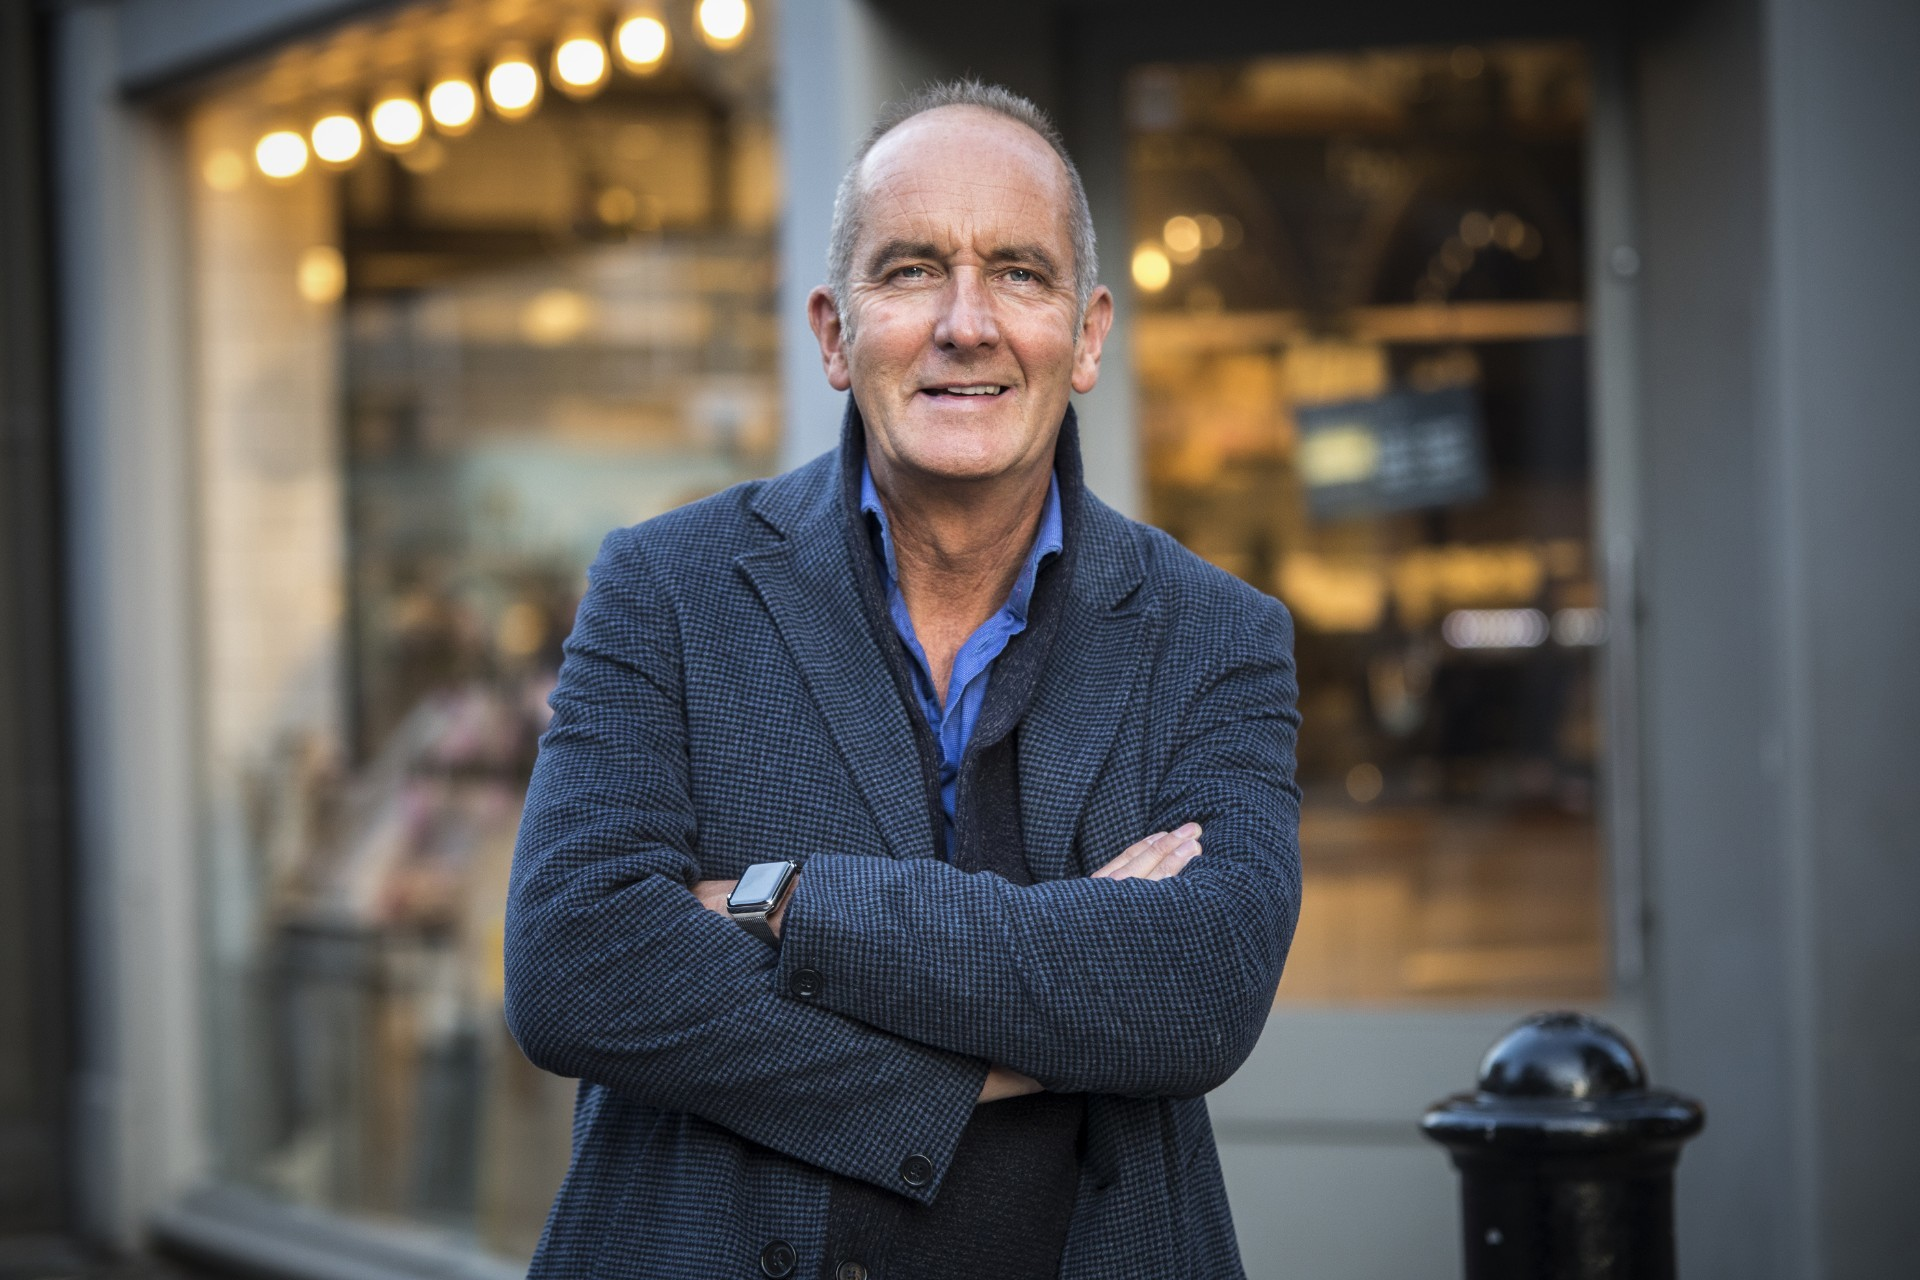 Grand Designs host Kevin McCloud stands wearing a jacket.